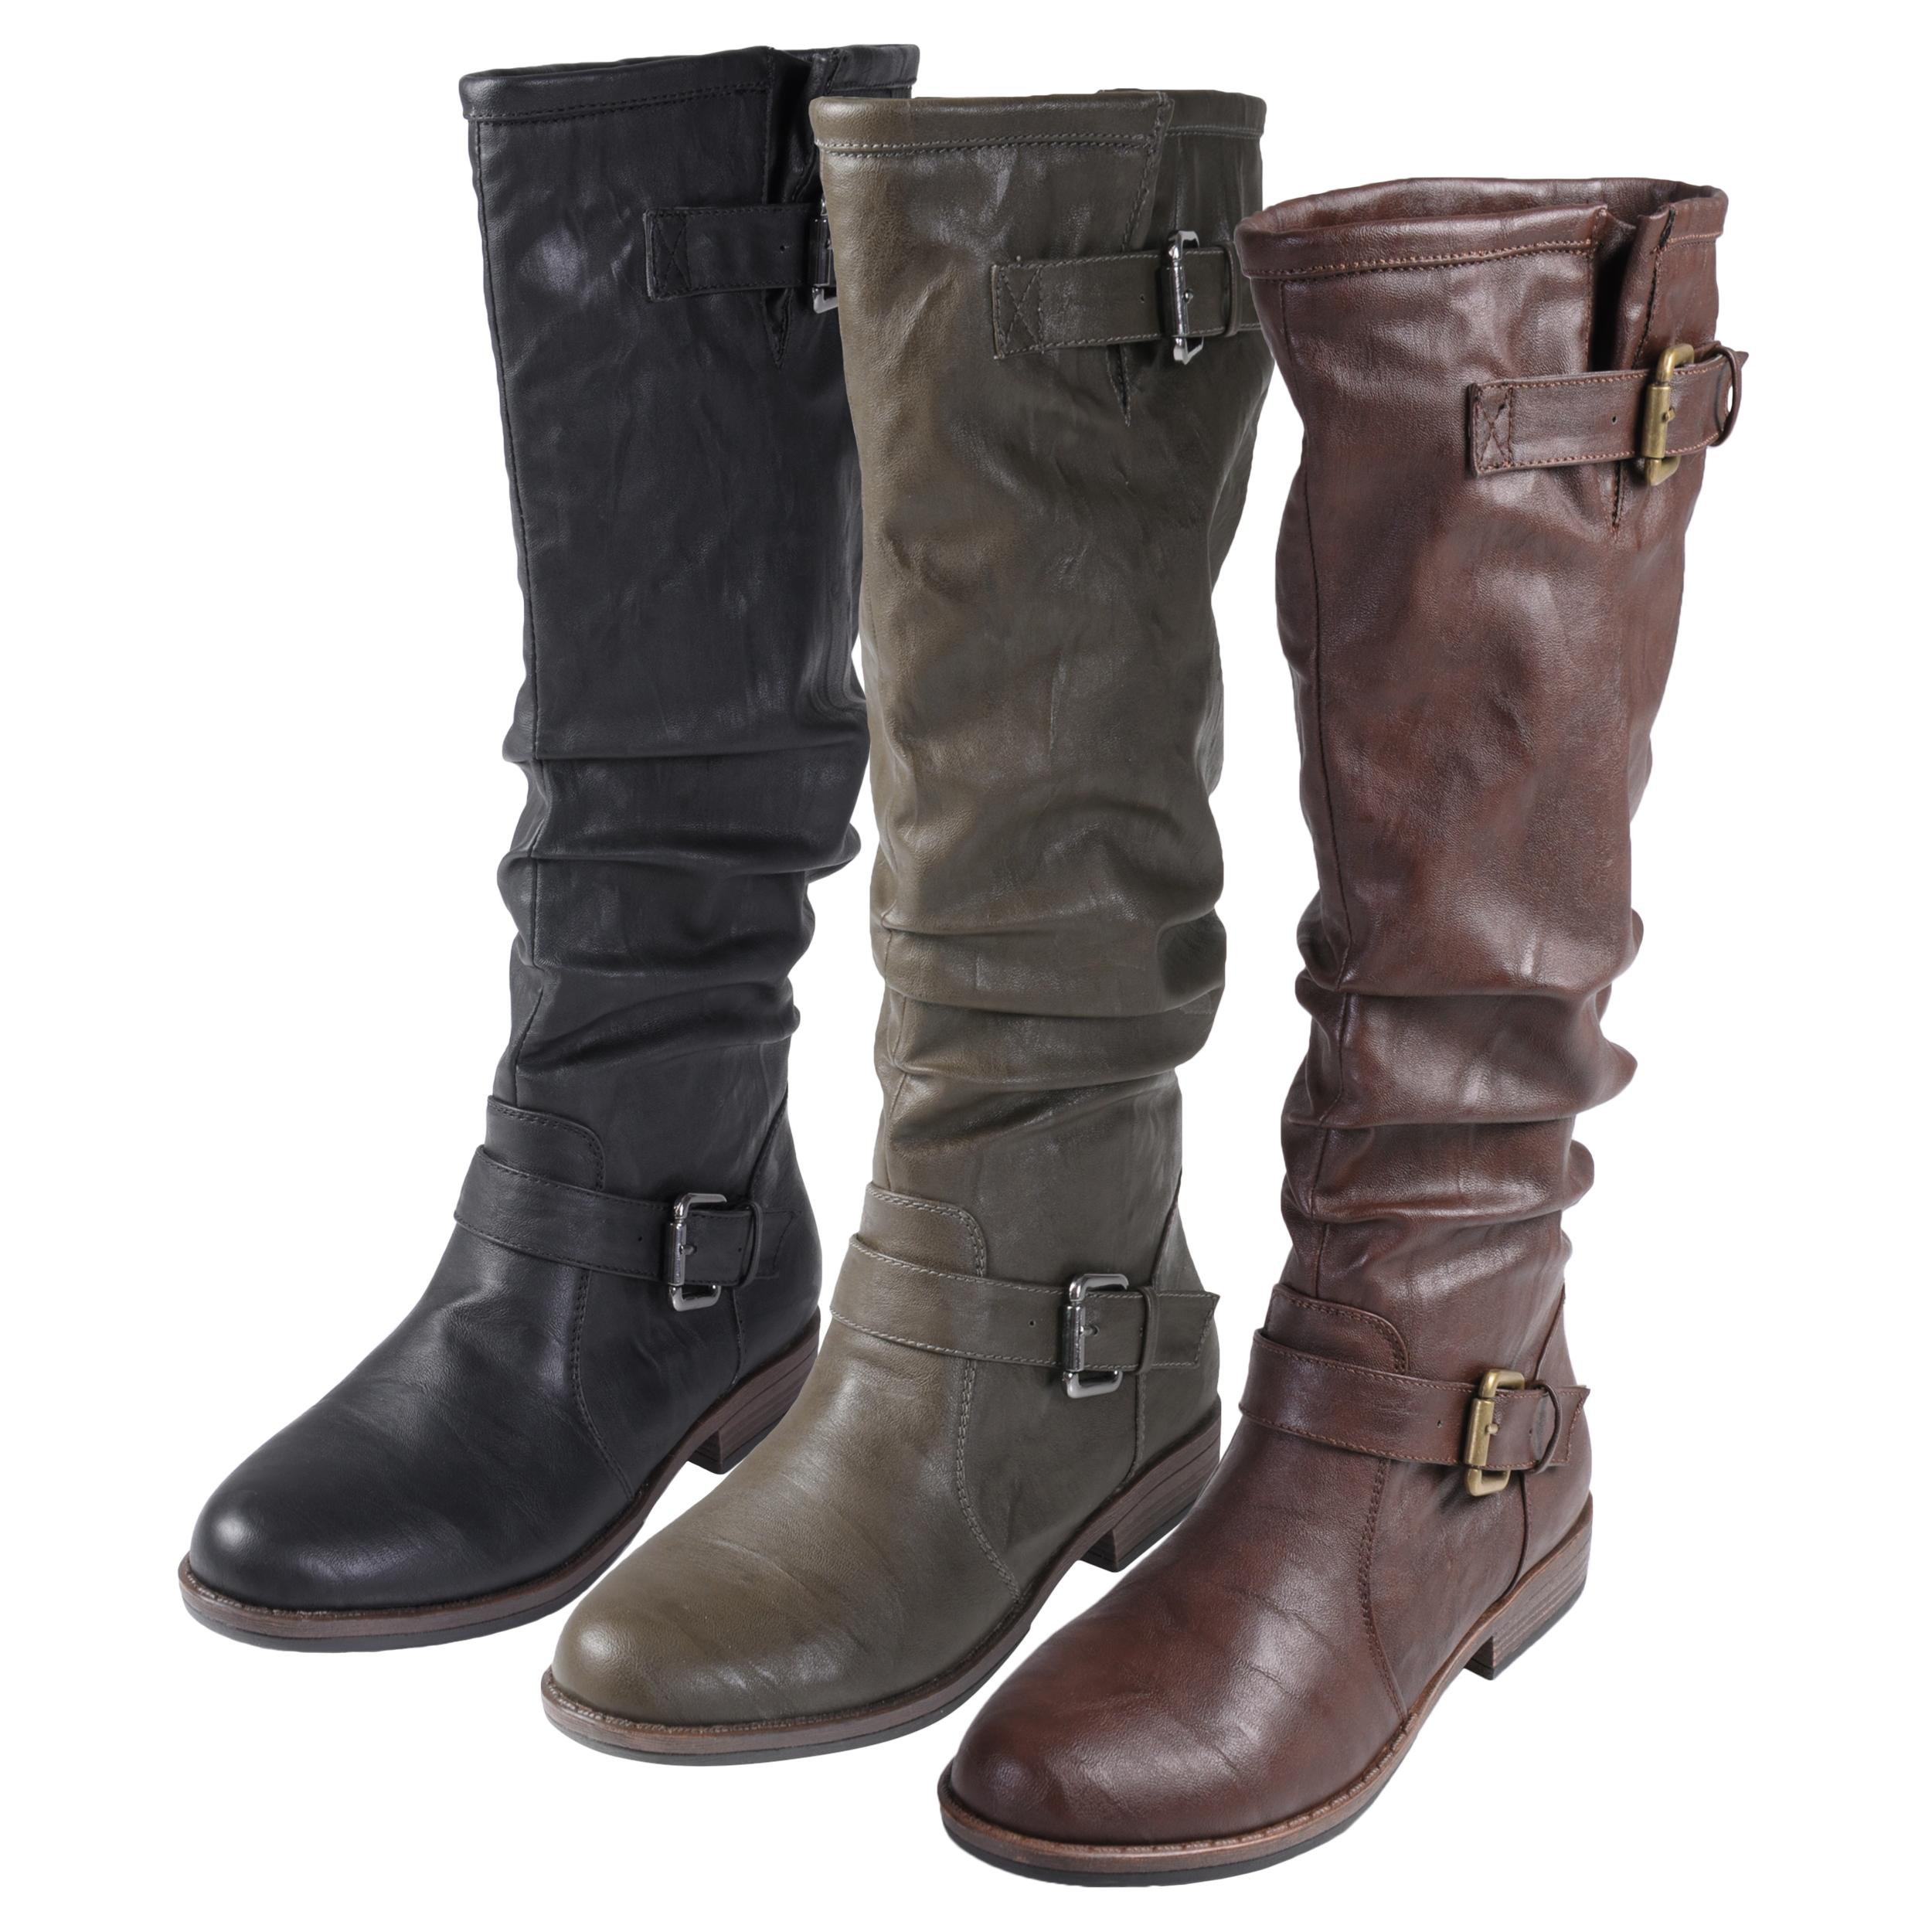 Tall Boots – The Best Pick for Winter